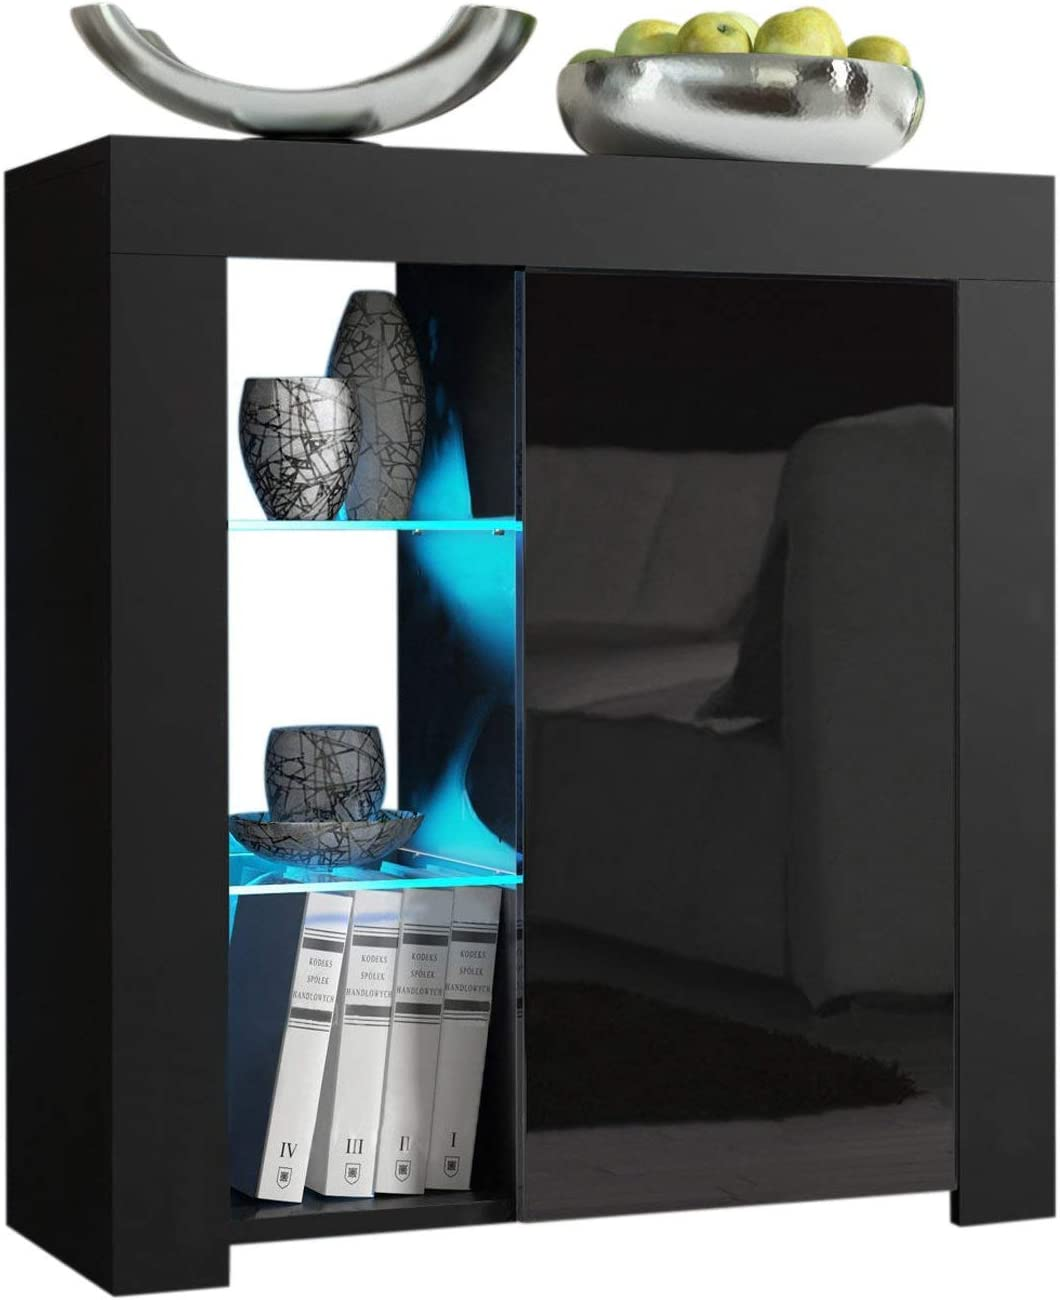 Domadeco Milano 1 Sideboard Contemporary Style Sideboard Cabinet and Buffet/Wooden sideboards Color Black and Black